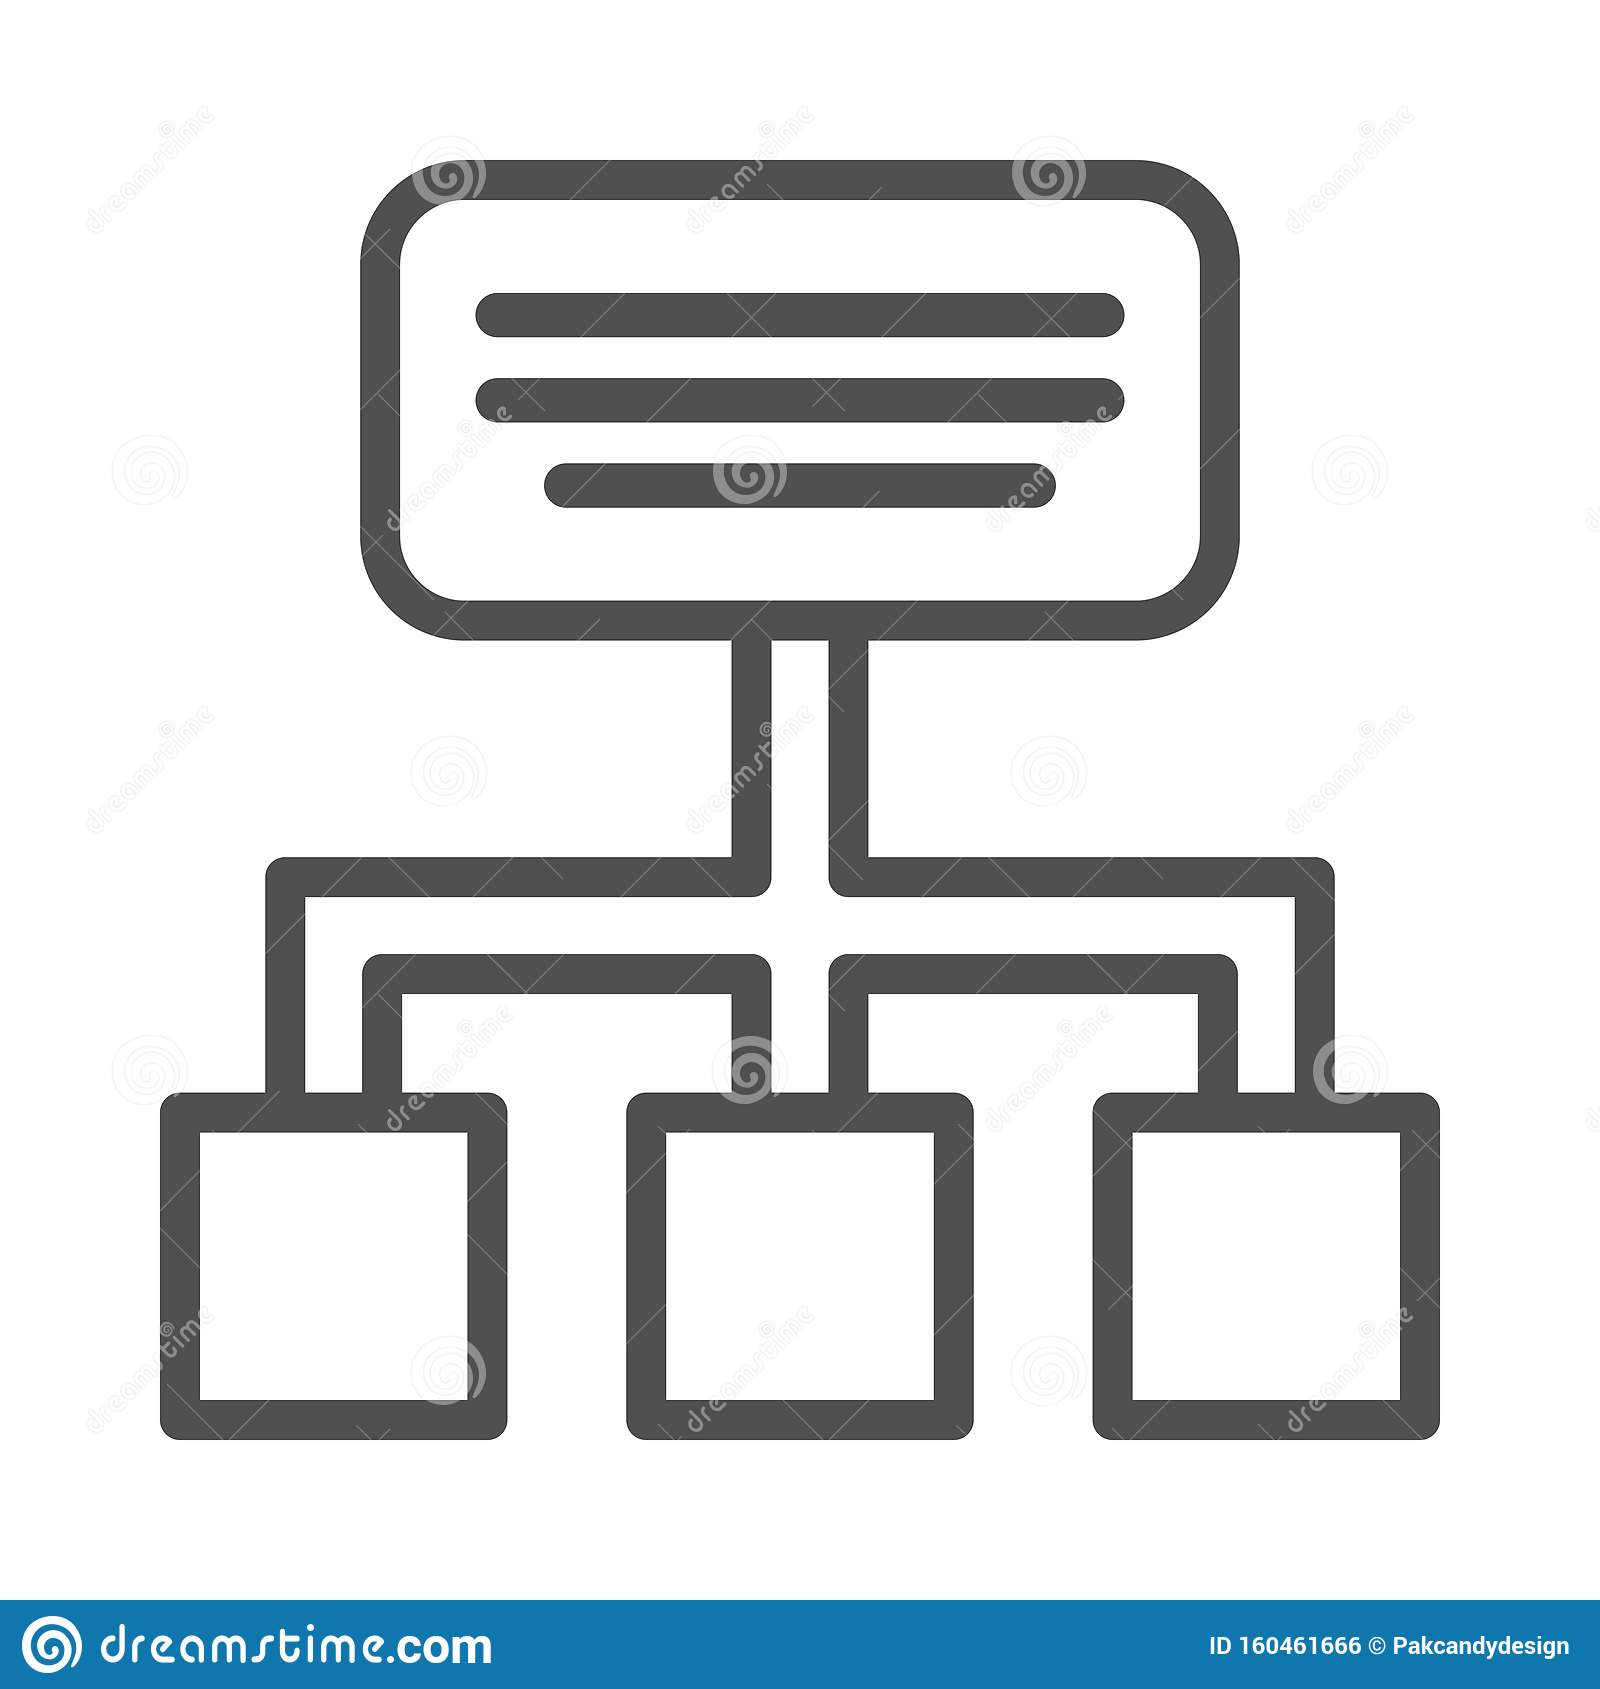 Hierarchy Vector Line icon isolated Graphic .Style in EPS 10 simple Line Icon element business & office concept. .